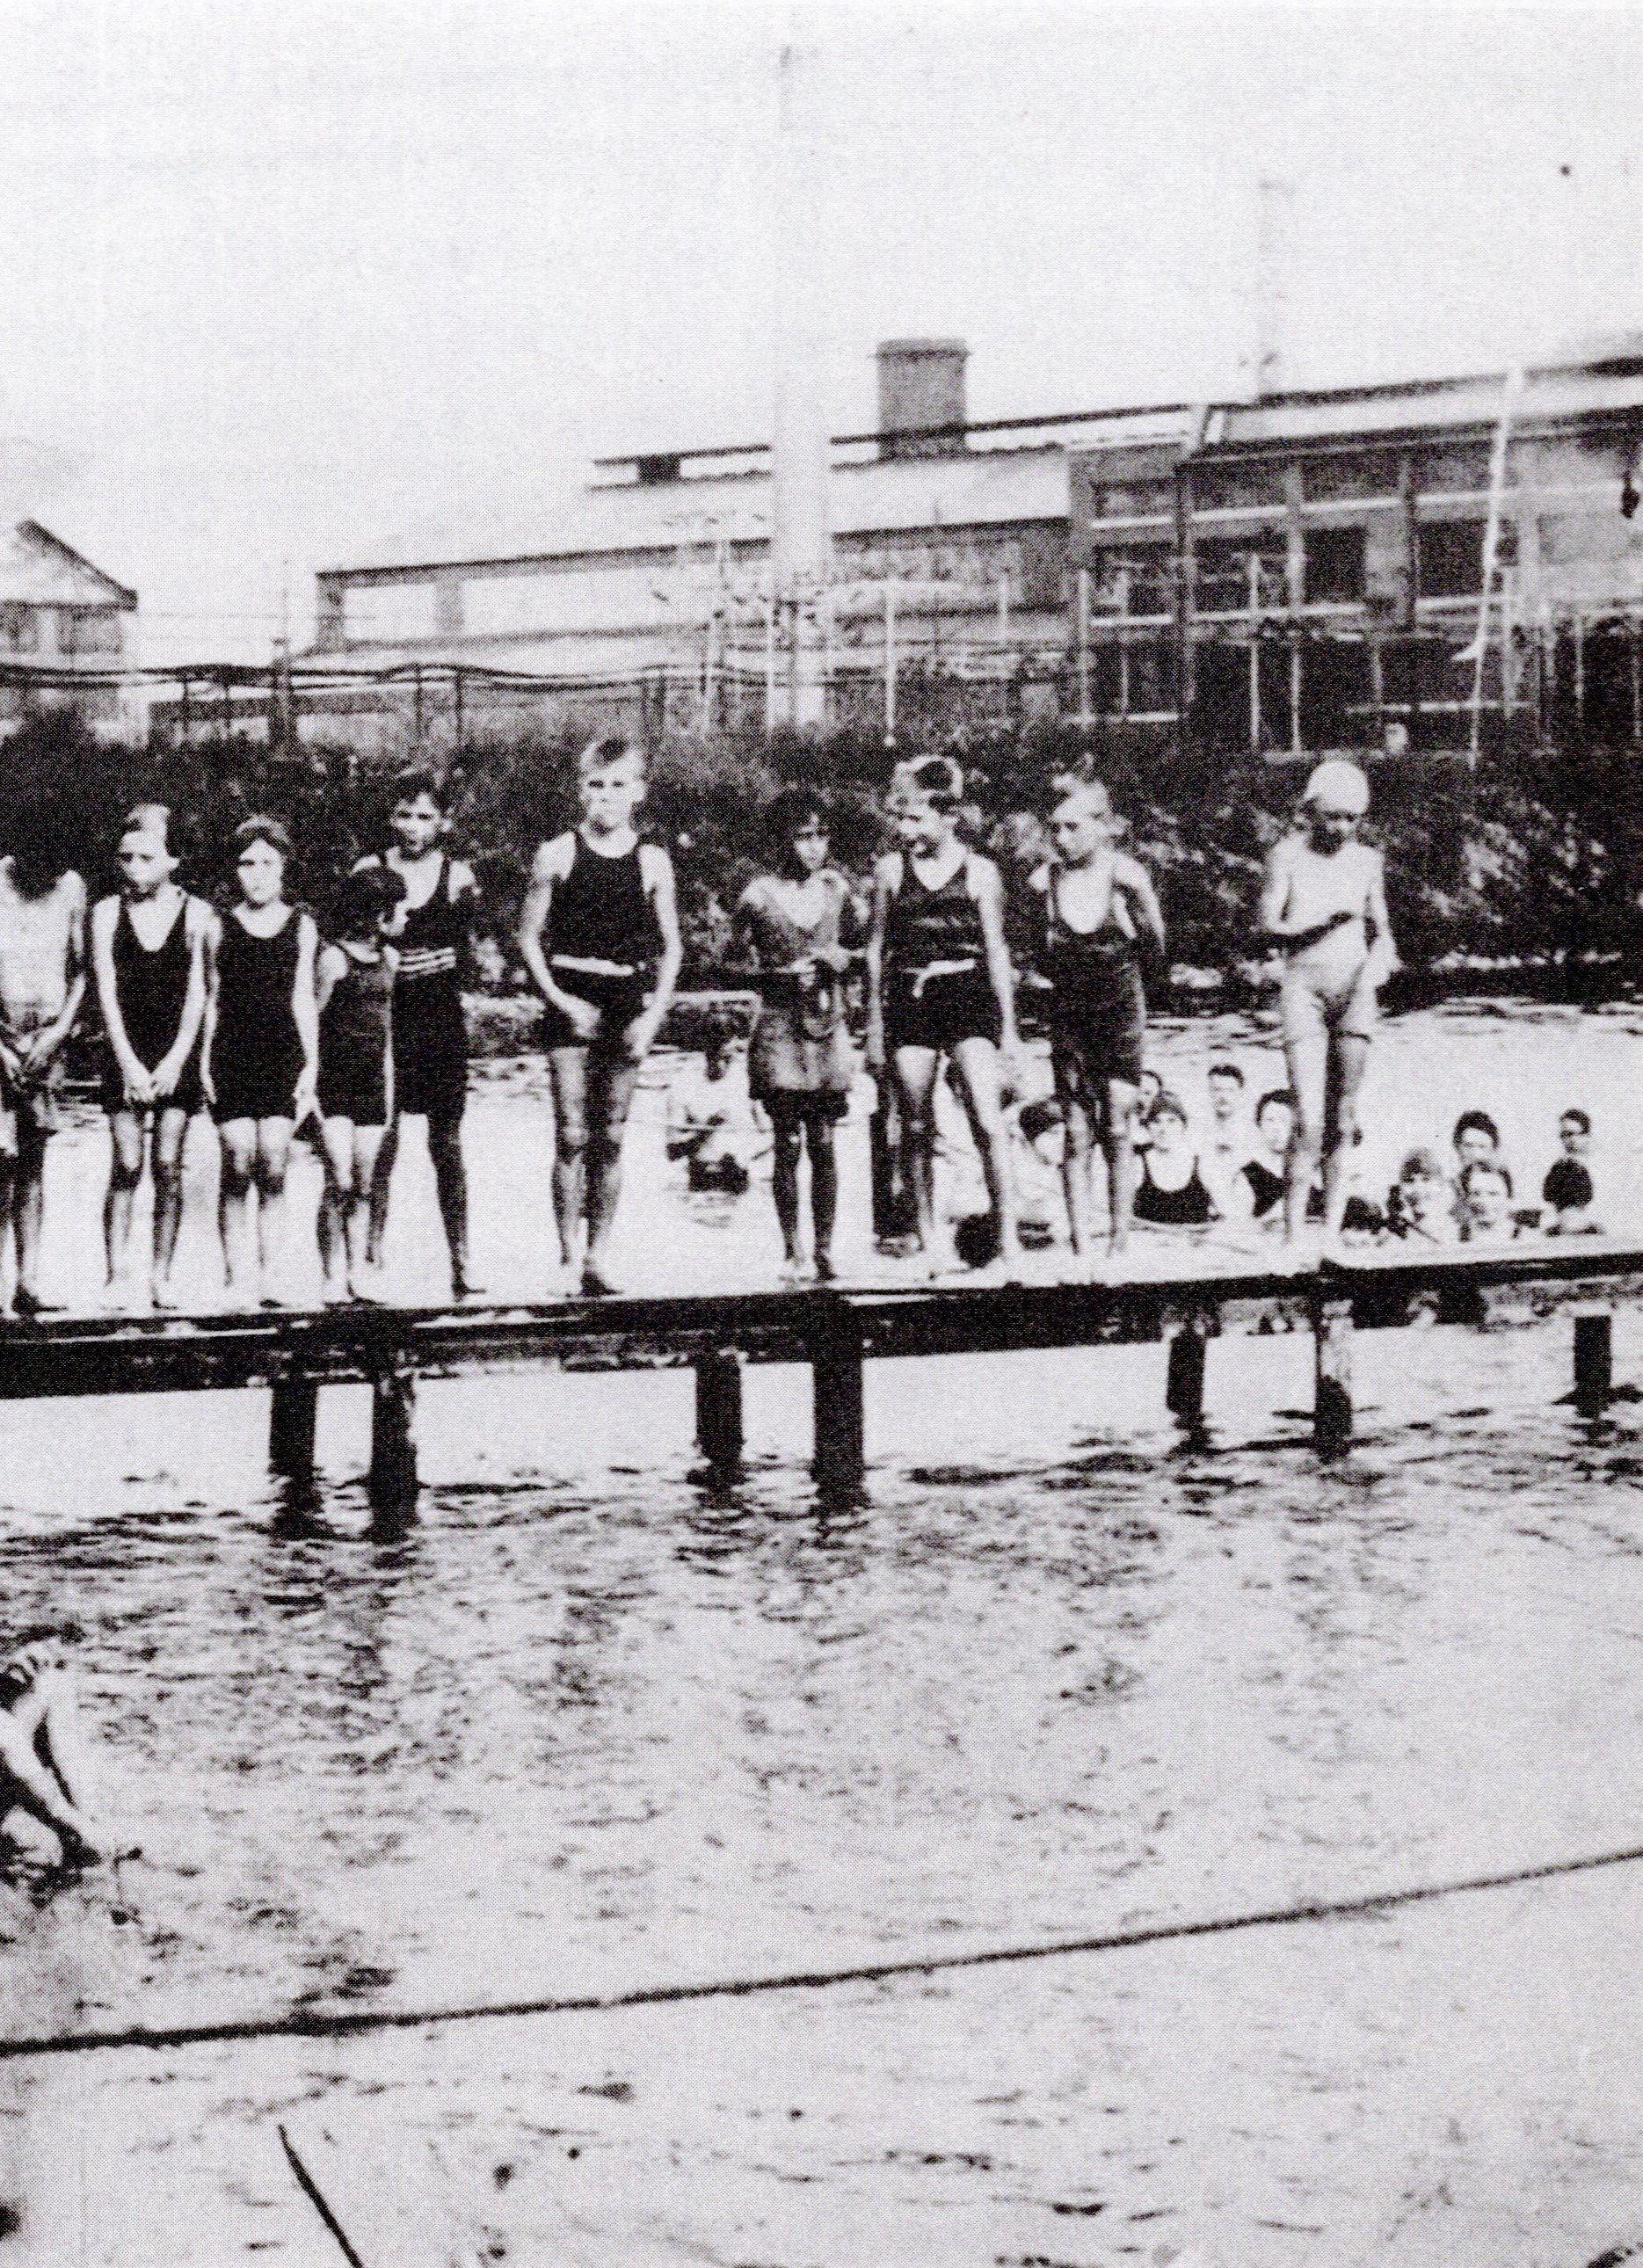 Armor Park Pool was 100 yards long by 75 yards wide, with a sandy beach. Annual passes to the pool cost 50-cents. Water was pumped in from the Kanawha River and chlorinated by a small barge towed around the pool by boat.